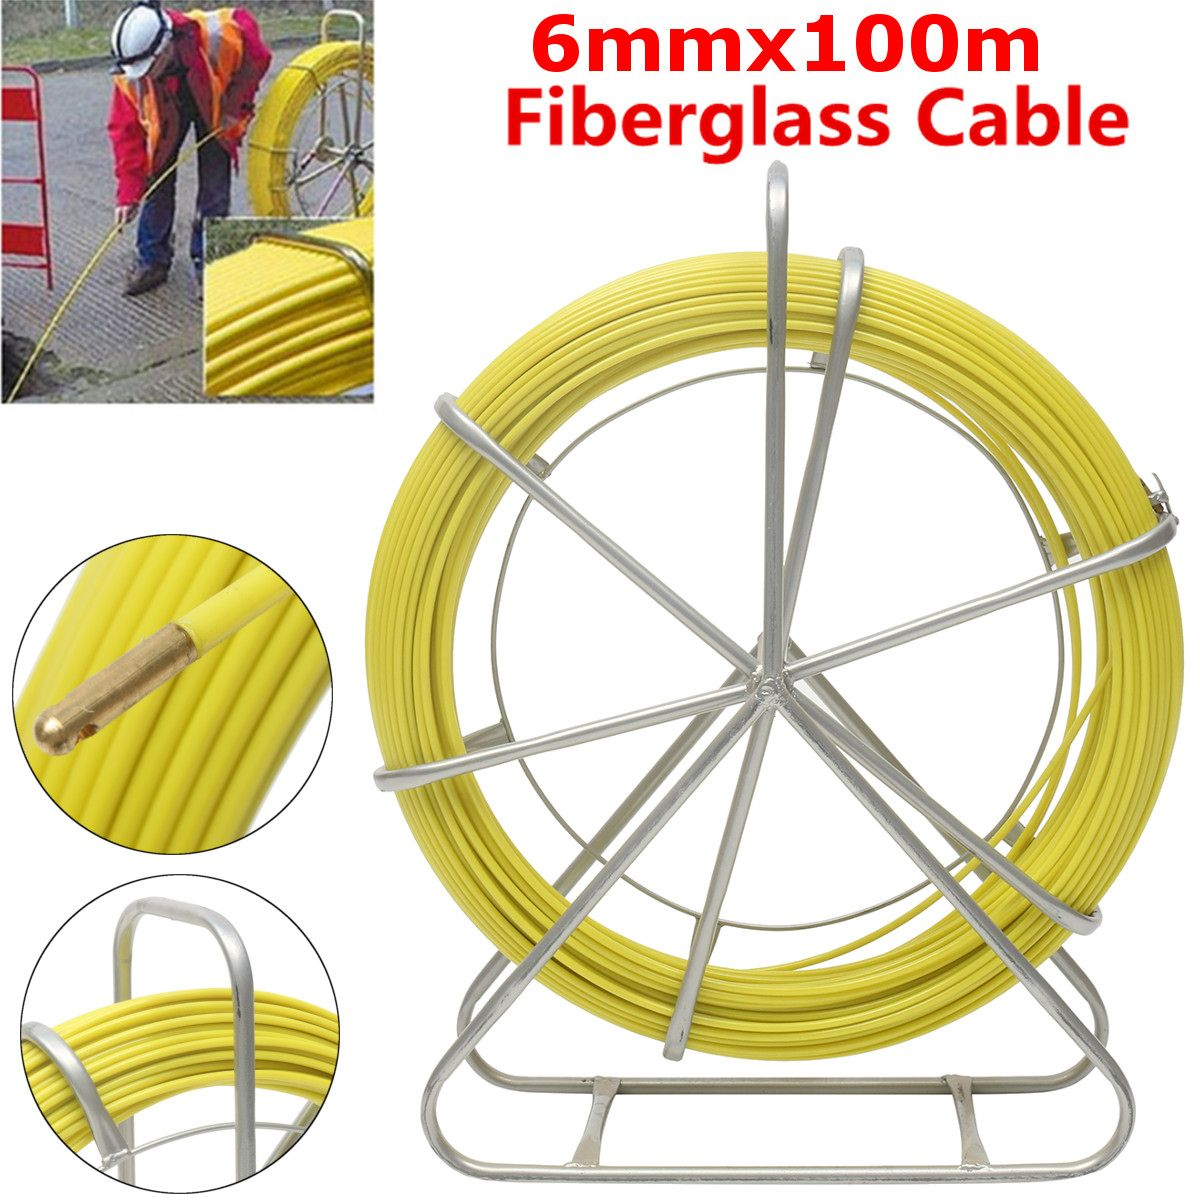 6mm 100m Fish Tape Puller Fiberglass Wire Cable Pipe Piercer Wire Running Rod Duct Rodder For Floor Conduit Telecom Wall Tools6mm 100m Fish Tape Puller Fiberglass Wire Cable Pipe Piercer Wire Running Rod Duct Rodder For Floor Conduit Telecom Wall Tools